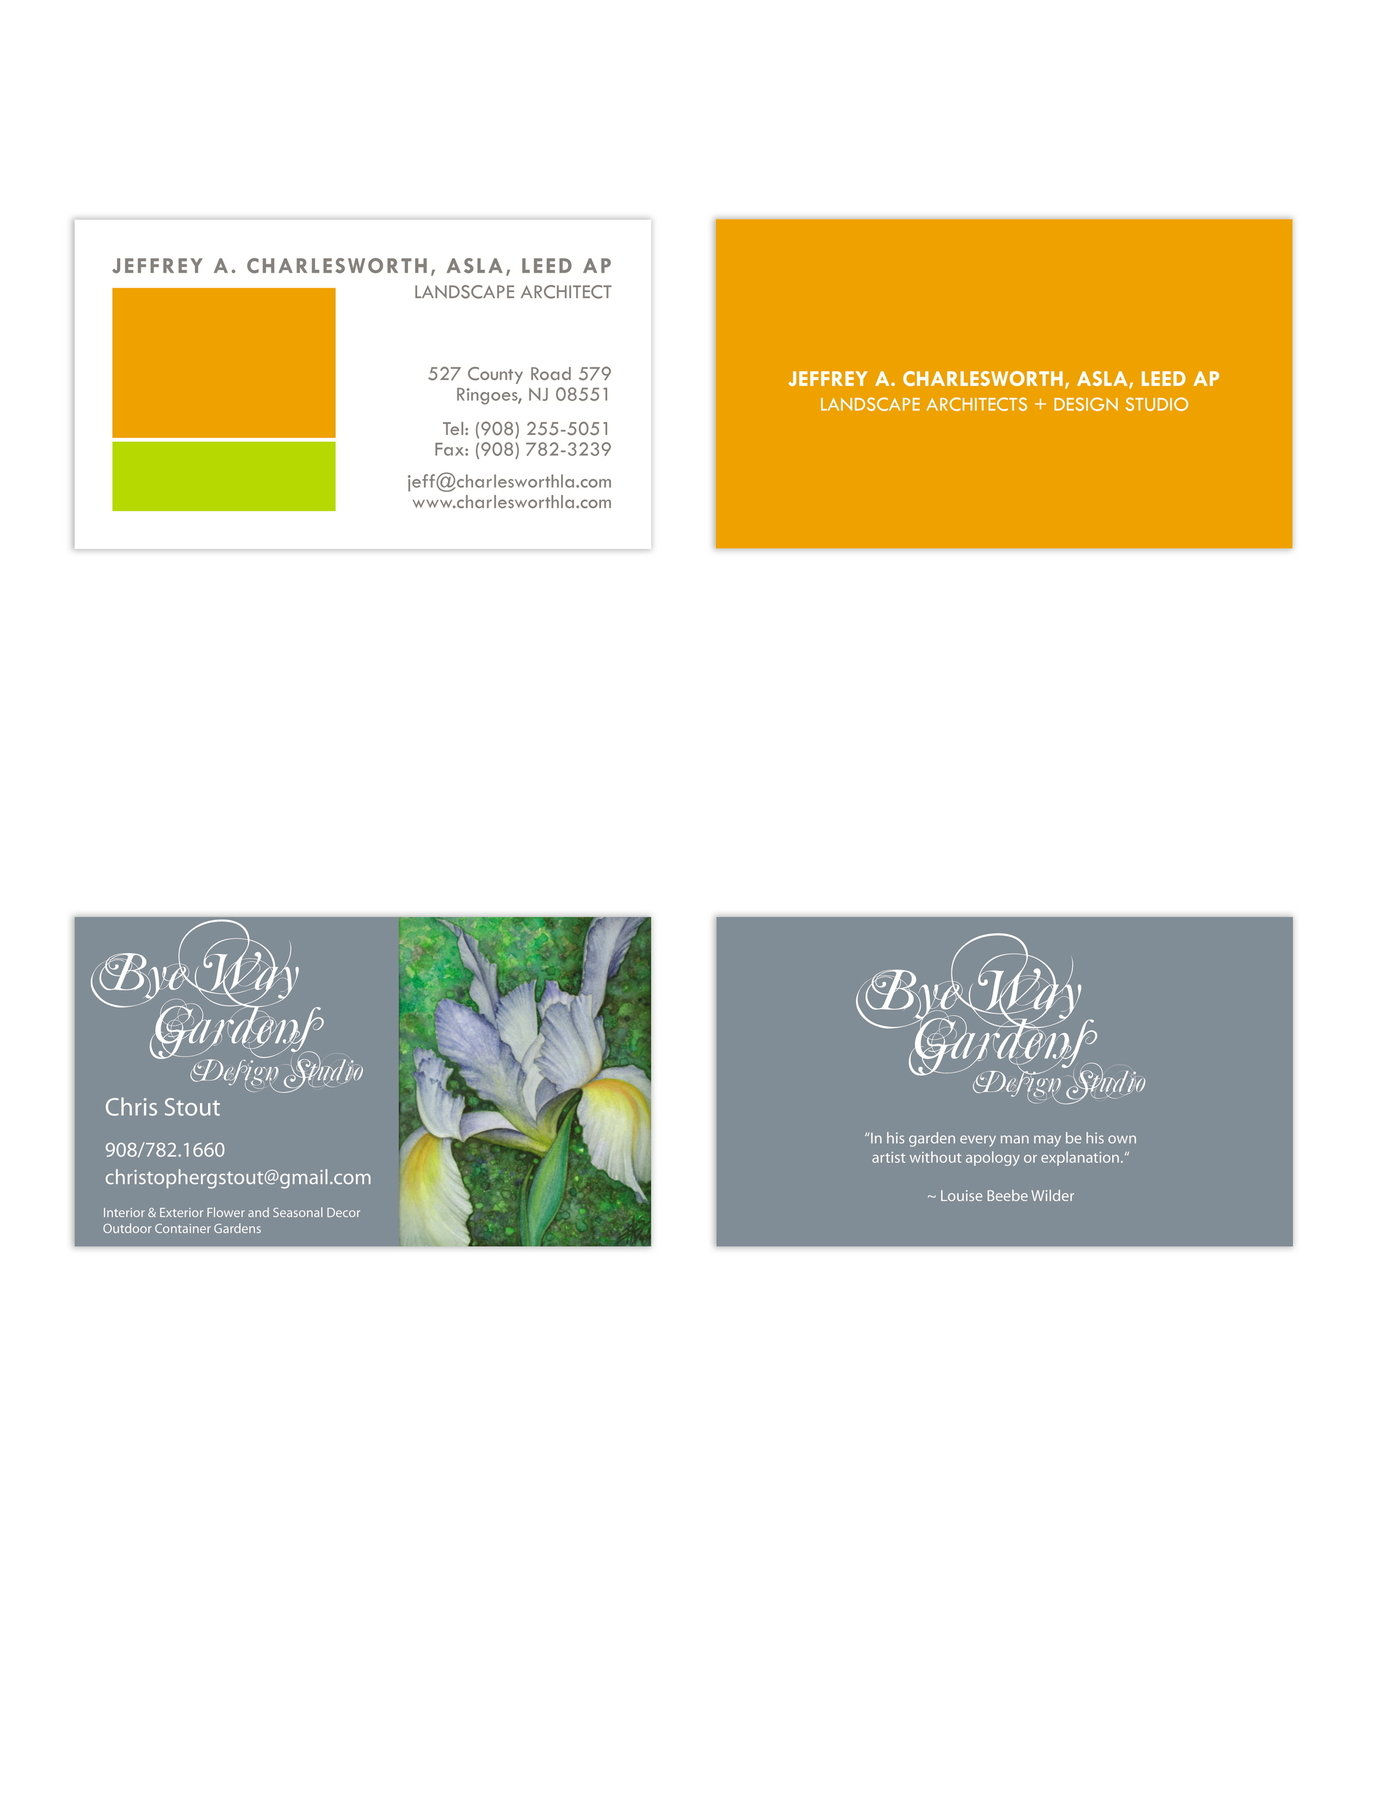 Letterhead and business cards by carla short at coroflot jeff charlesworth landscape architect and chris stout landscape design jeff charlesworth logo and business card for landscape architect in ringoes nj magicingreecefo Images